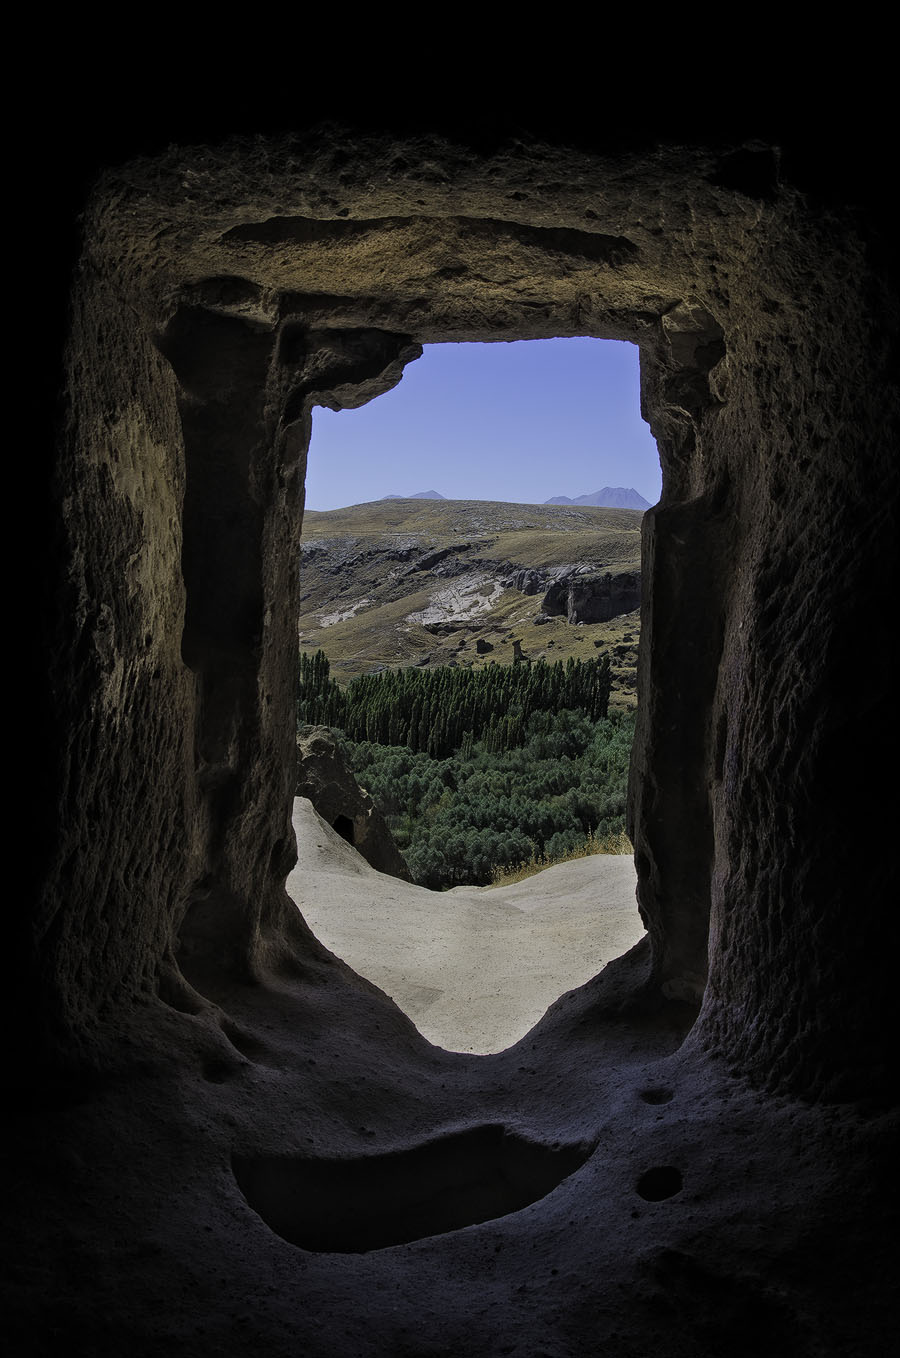 View from a cave house in Cappadocia